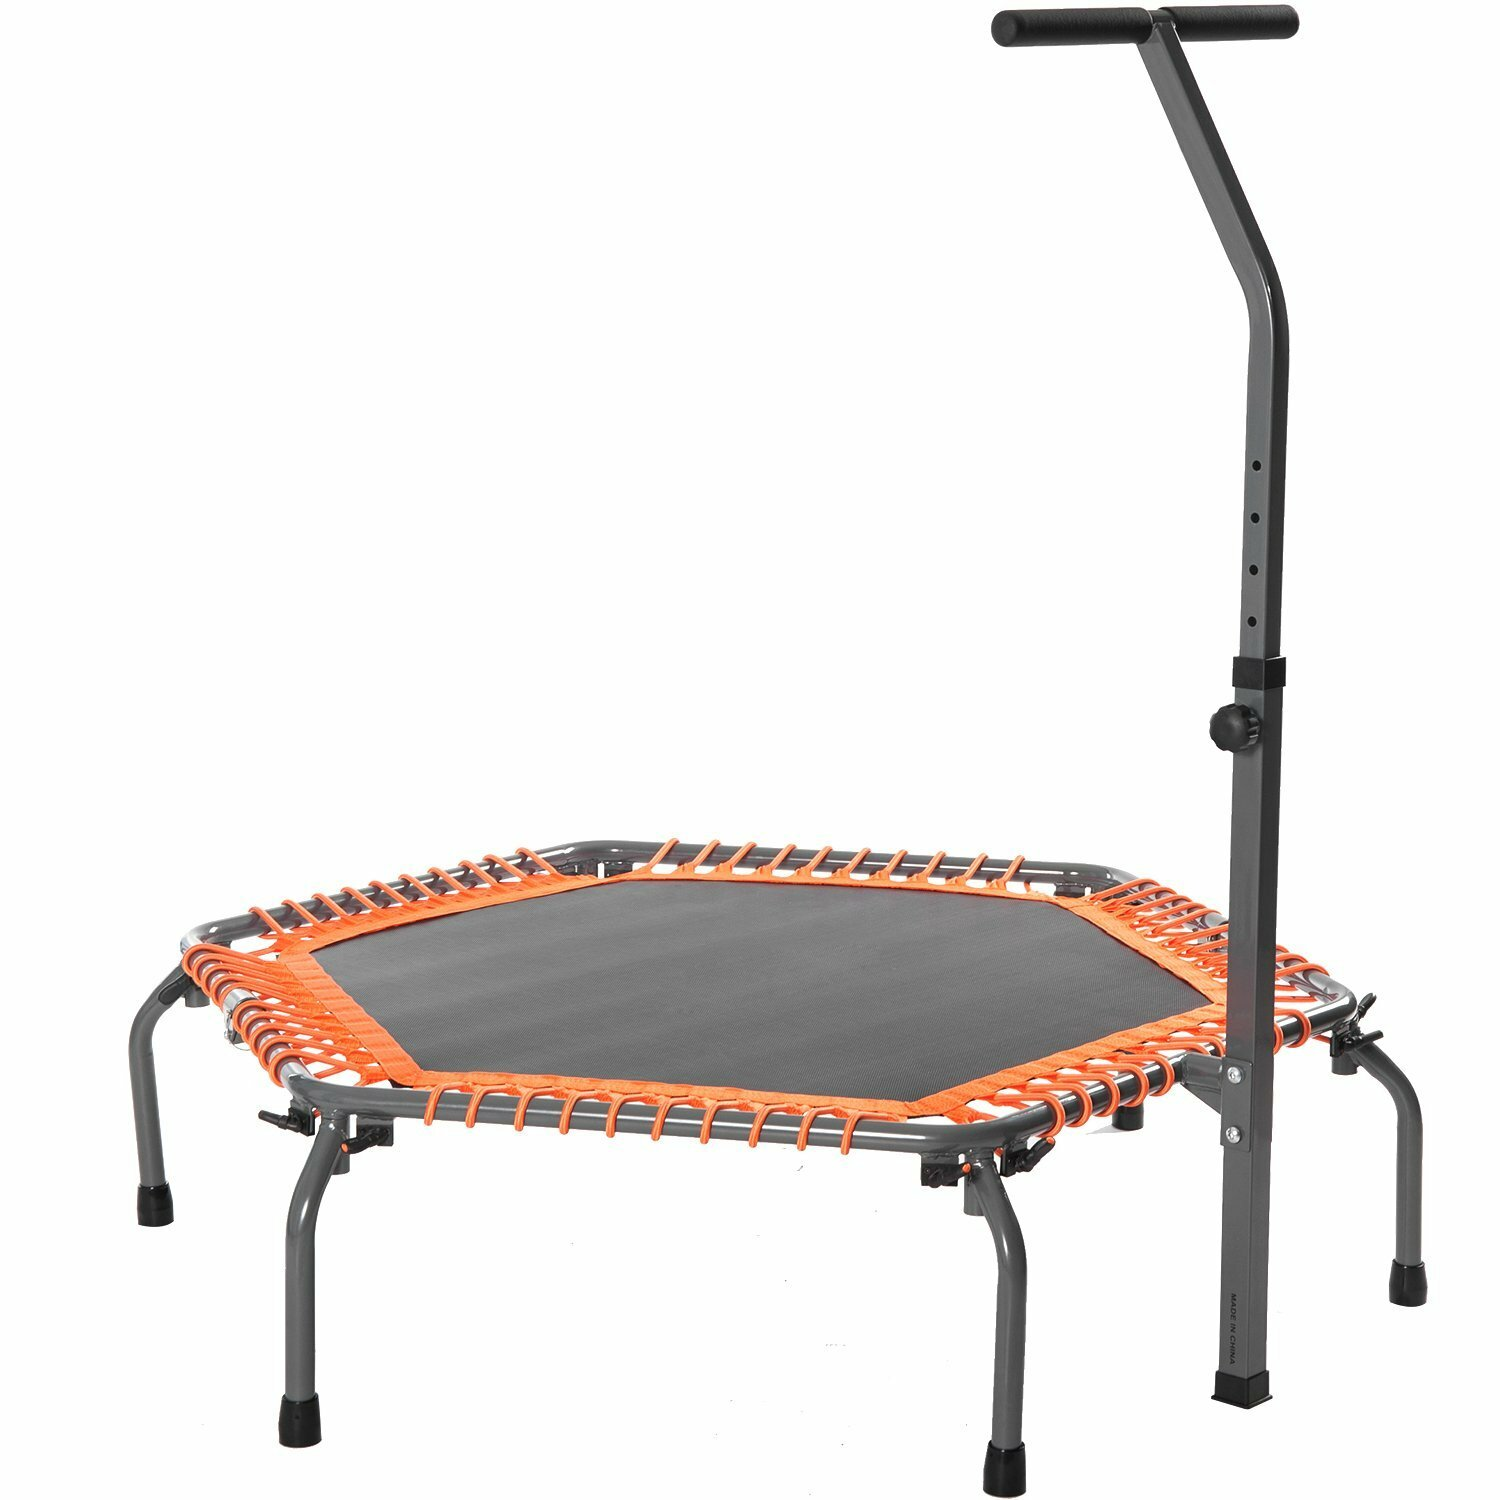 Merax 4.5' Exercise Fitness Trampoline with Safety Enclosure | Wayfair